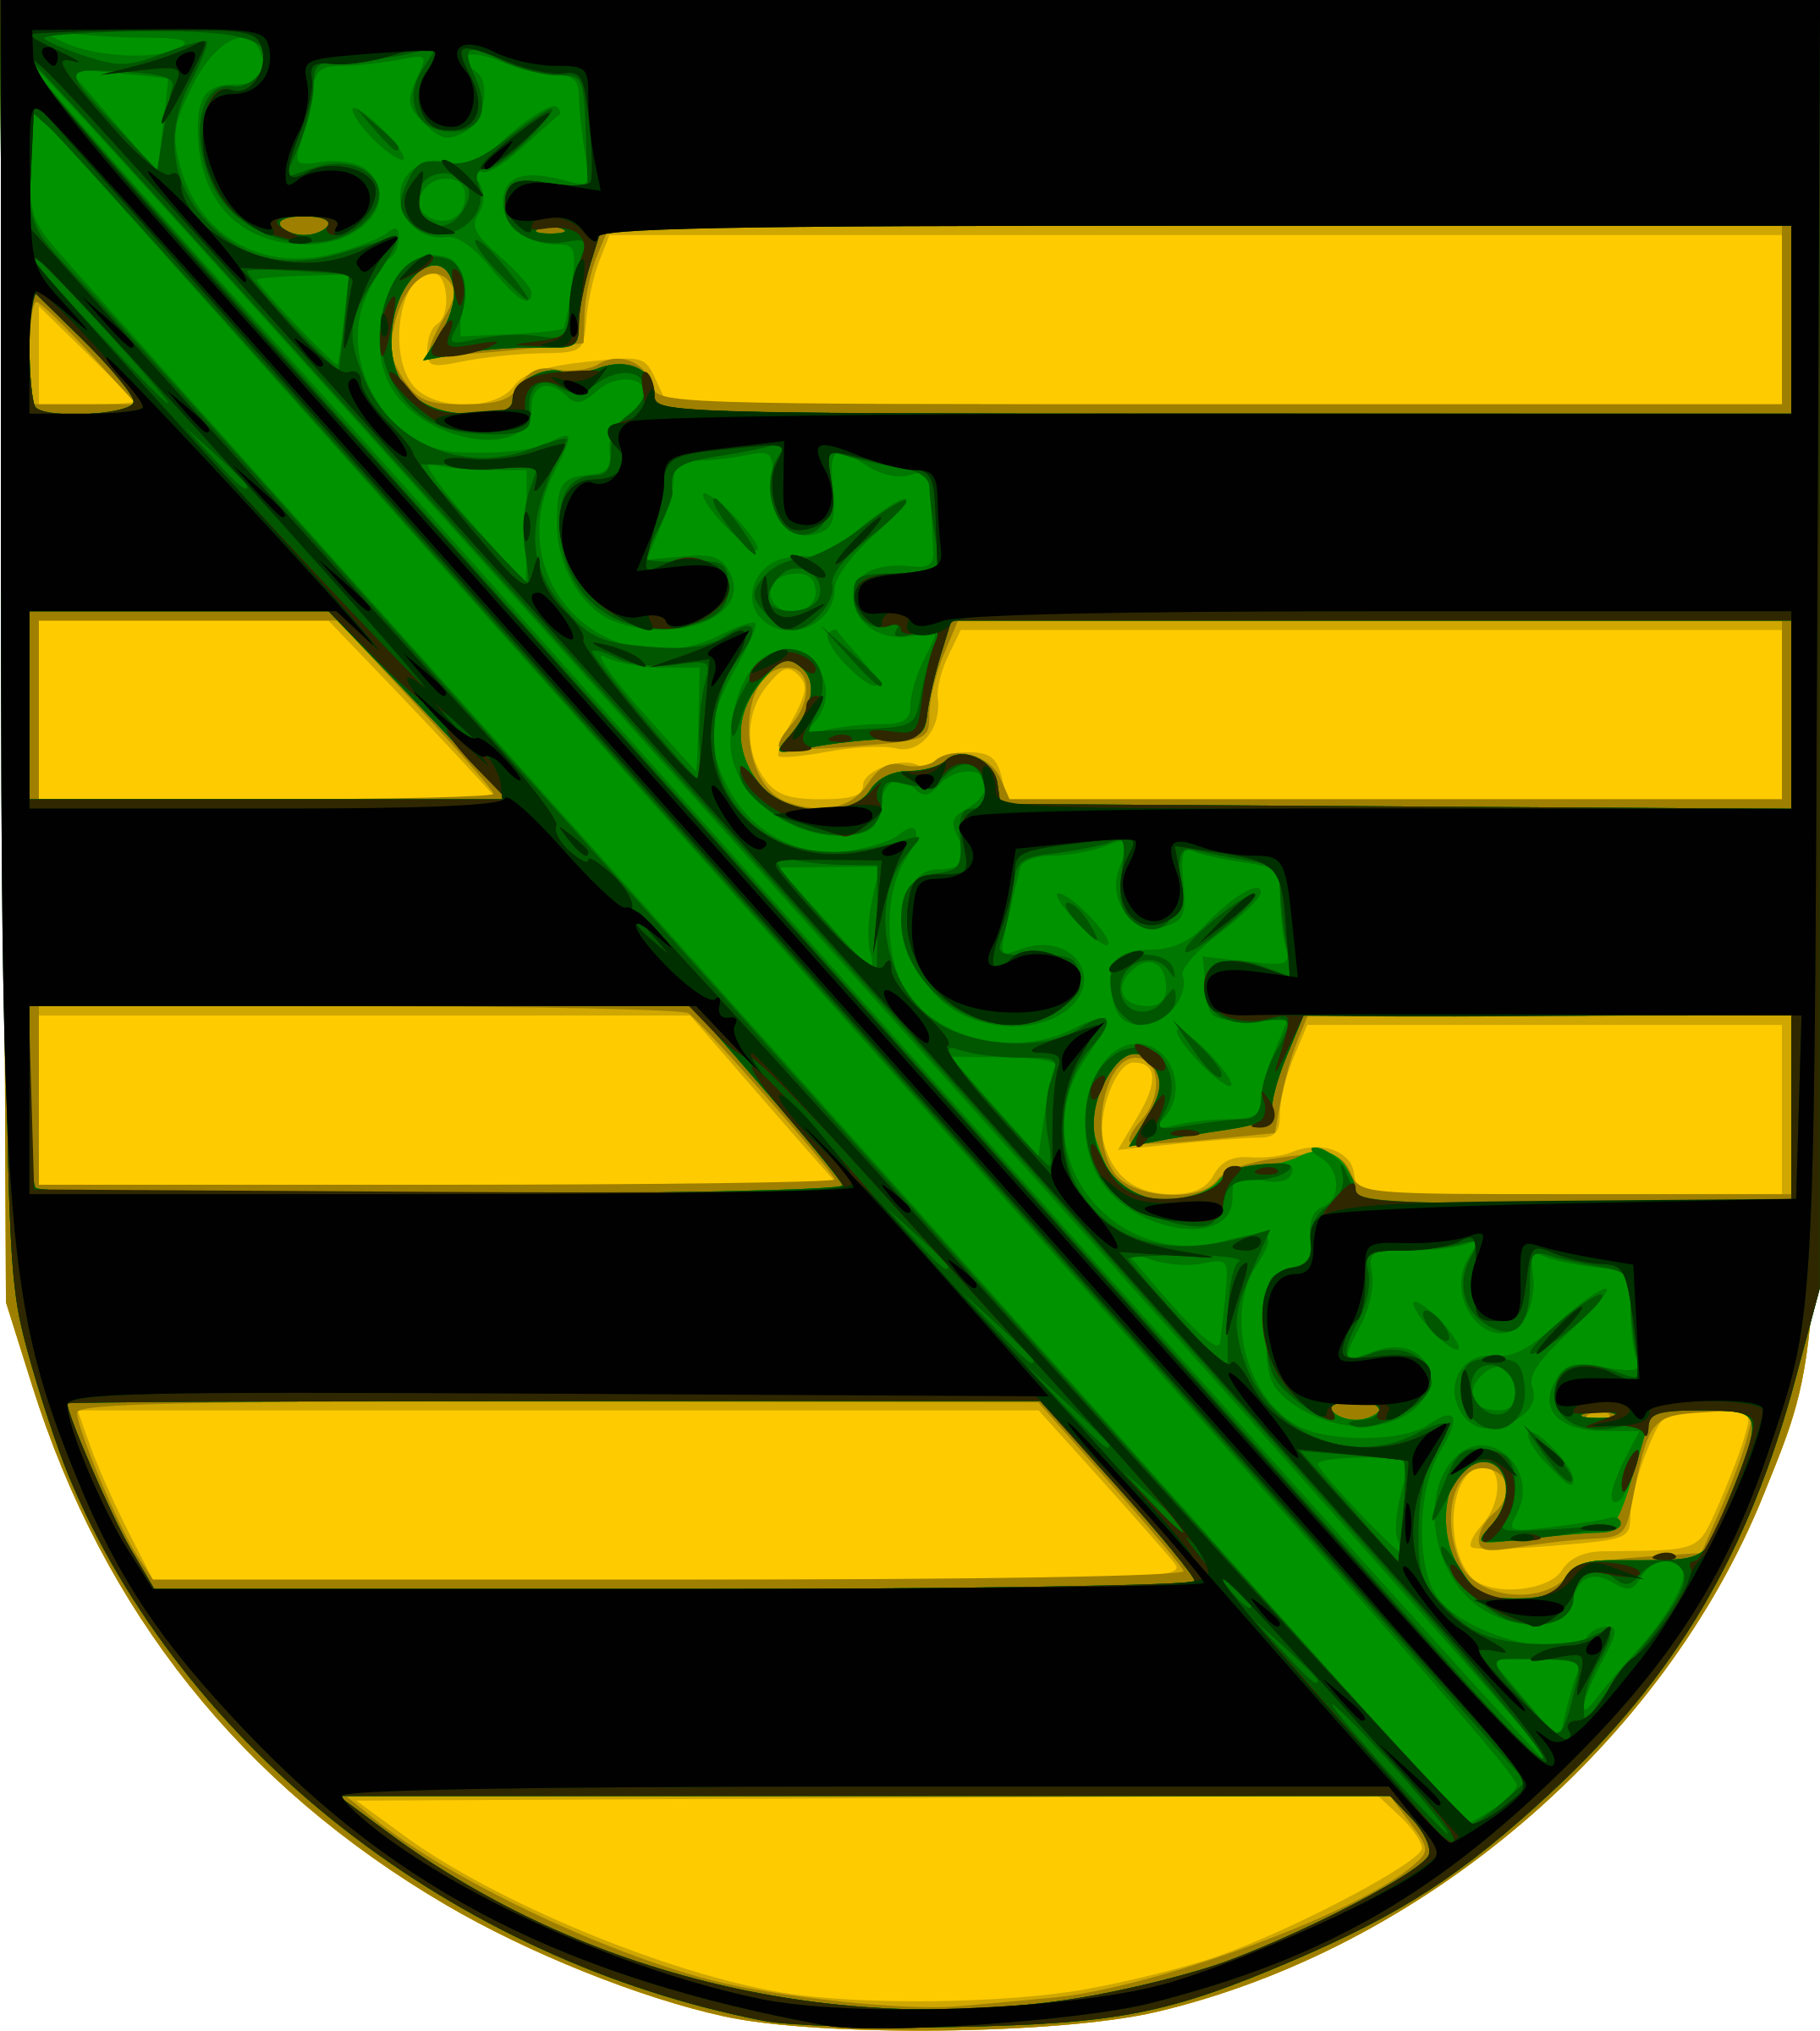 Saxony coat of arms by Anonymous